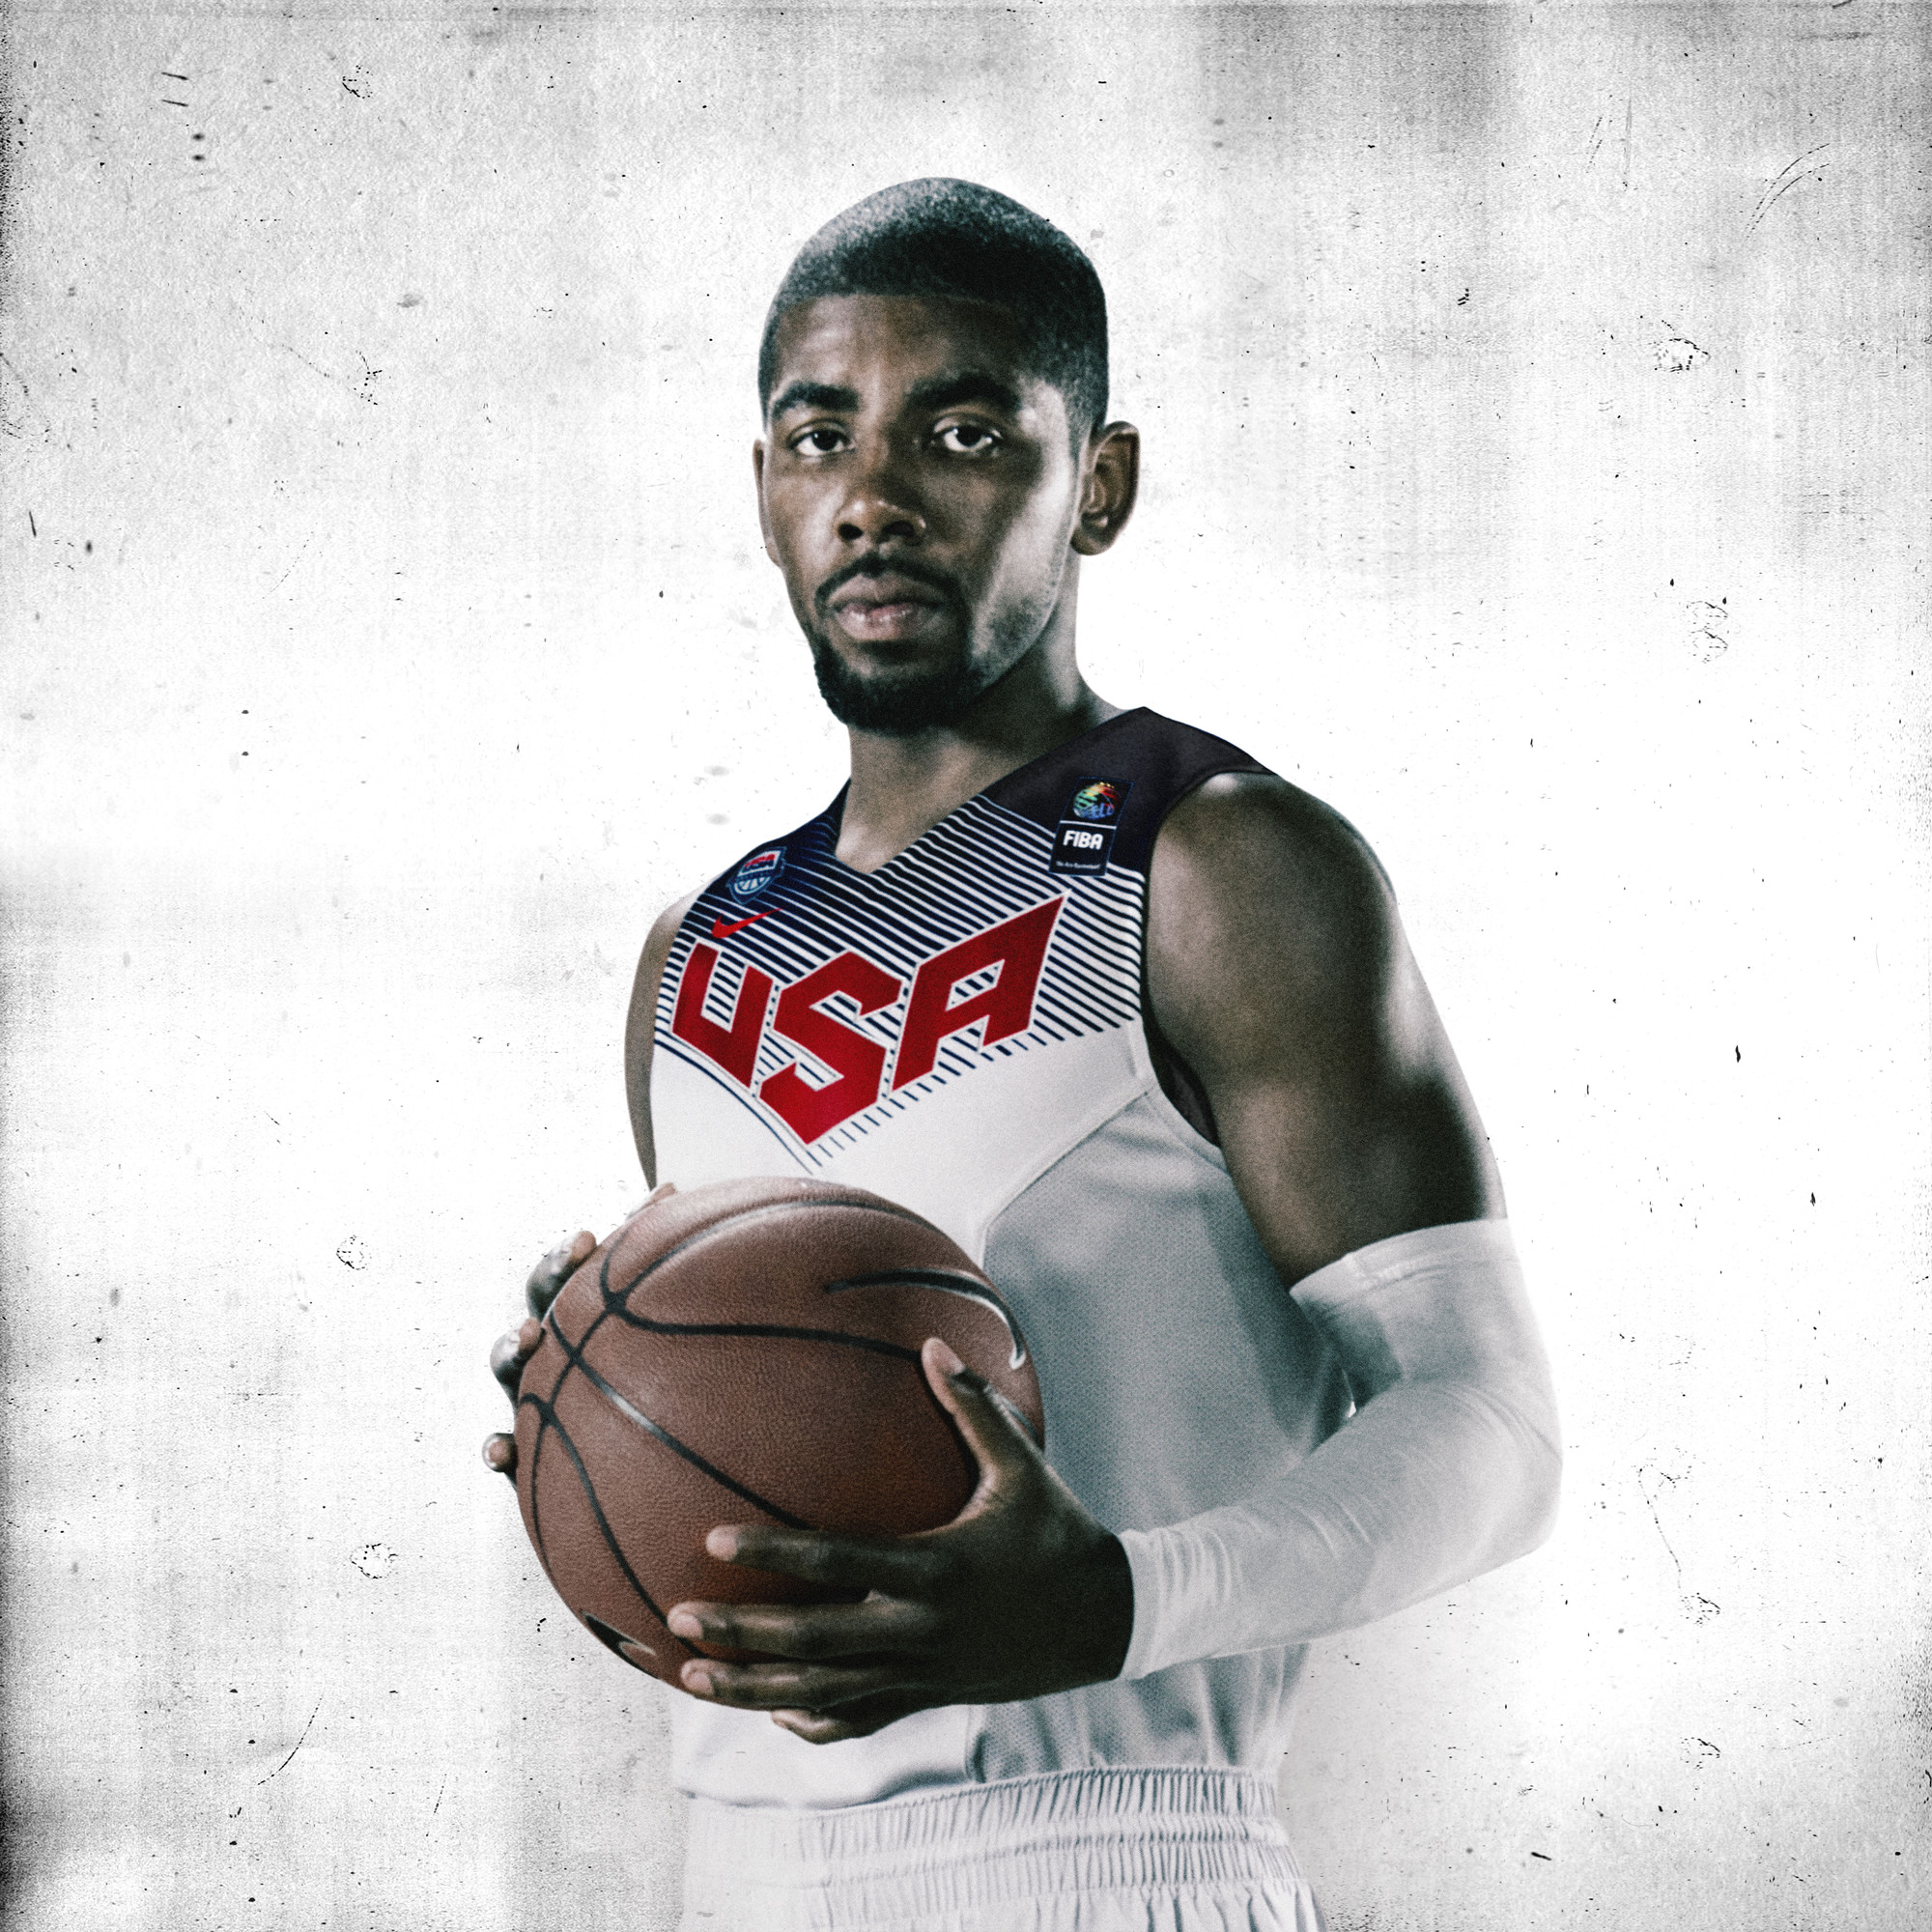 451941dae78 Download Image LO · HI Nike Basketball Unveils USA Basketball Uniform.  Download Image LO · HI .